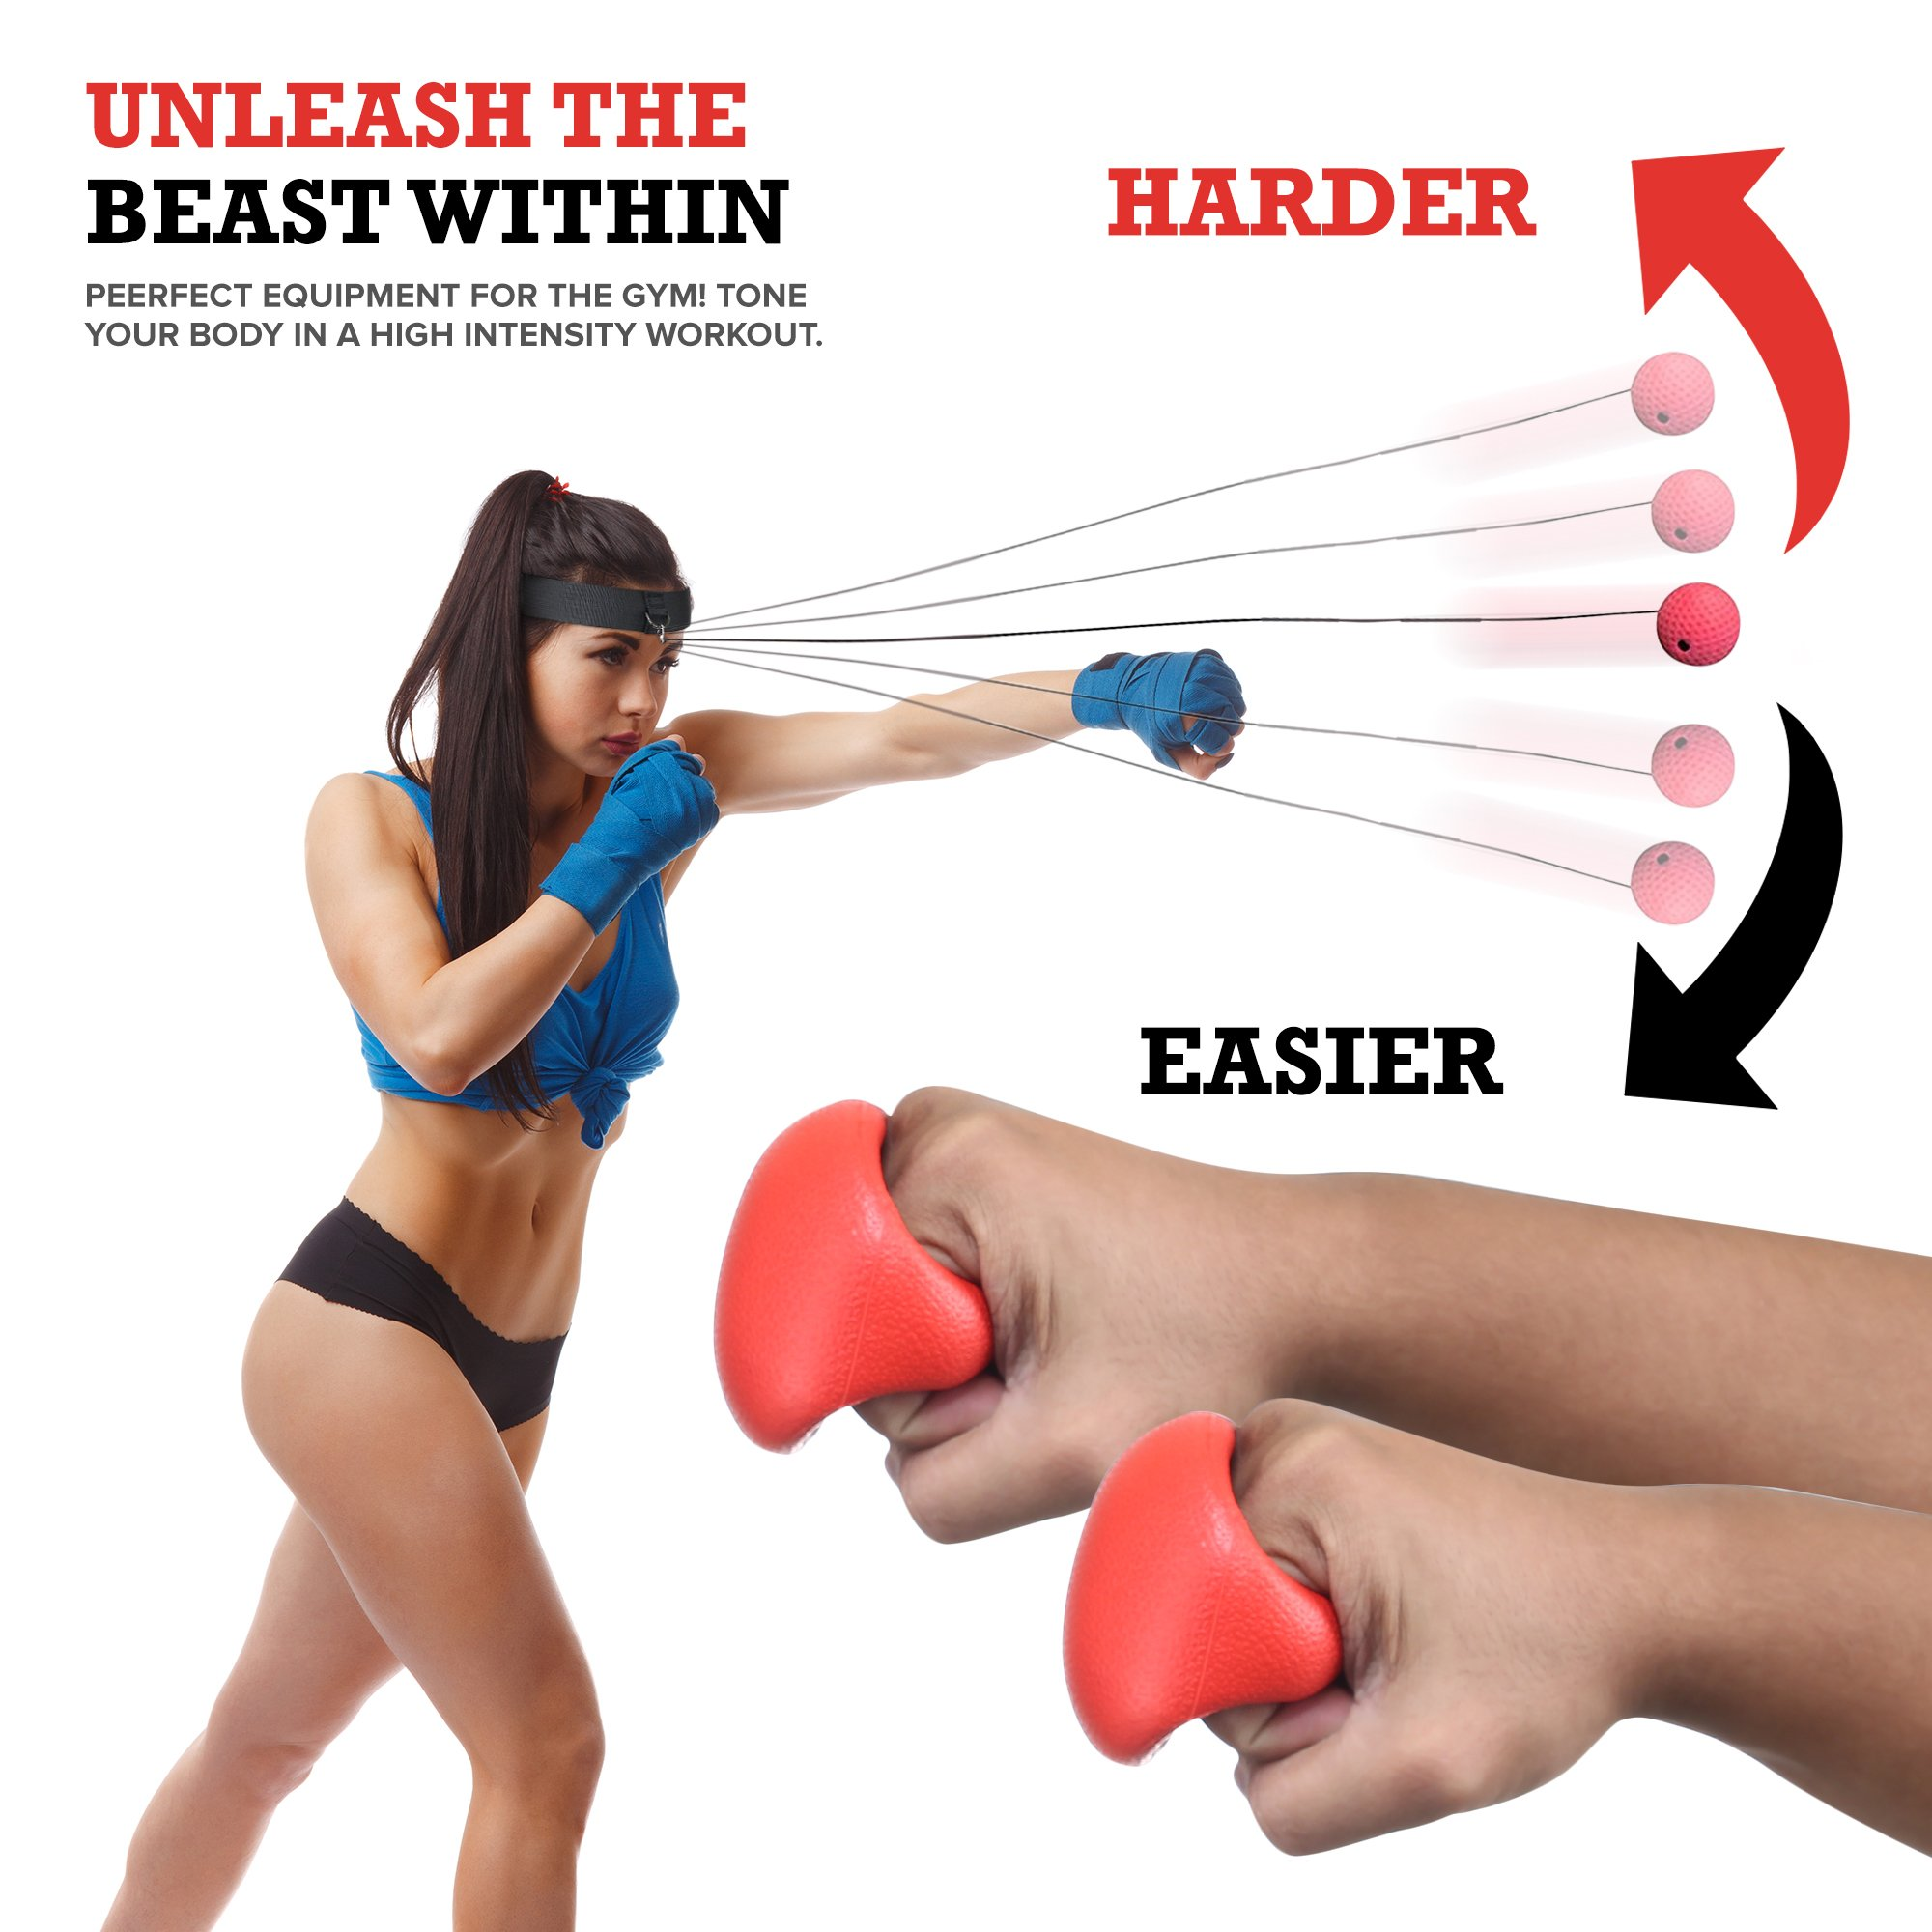 Boxing Reflex Ball - Boxing Equipment, Adjustable Head Band, Gloves, Extra String, Instruction and Repair Guide Included - Perfect For Reflex/Speed Training Improve Reactions for Kids Aswell by Punch King (Image #5)